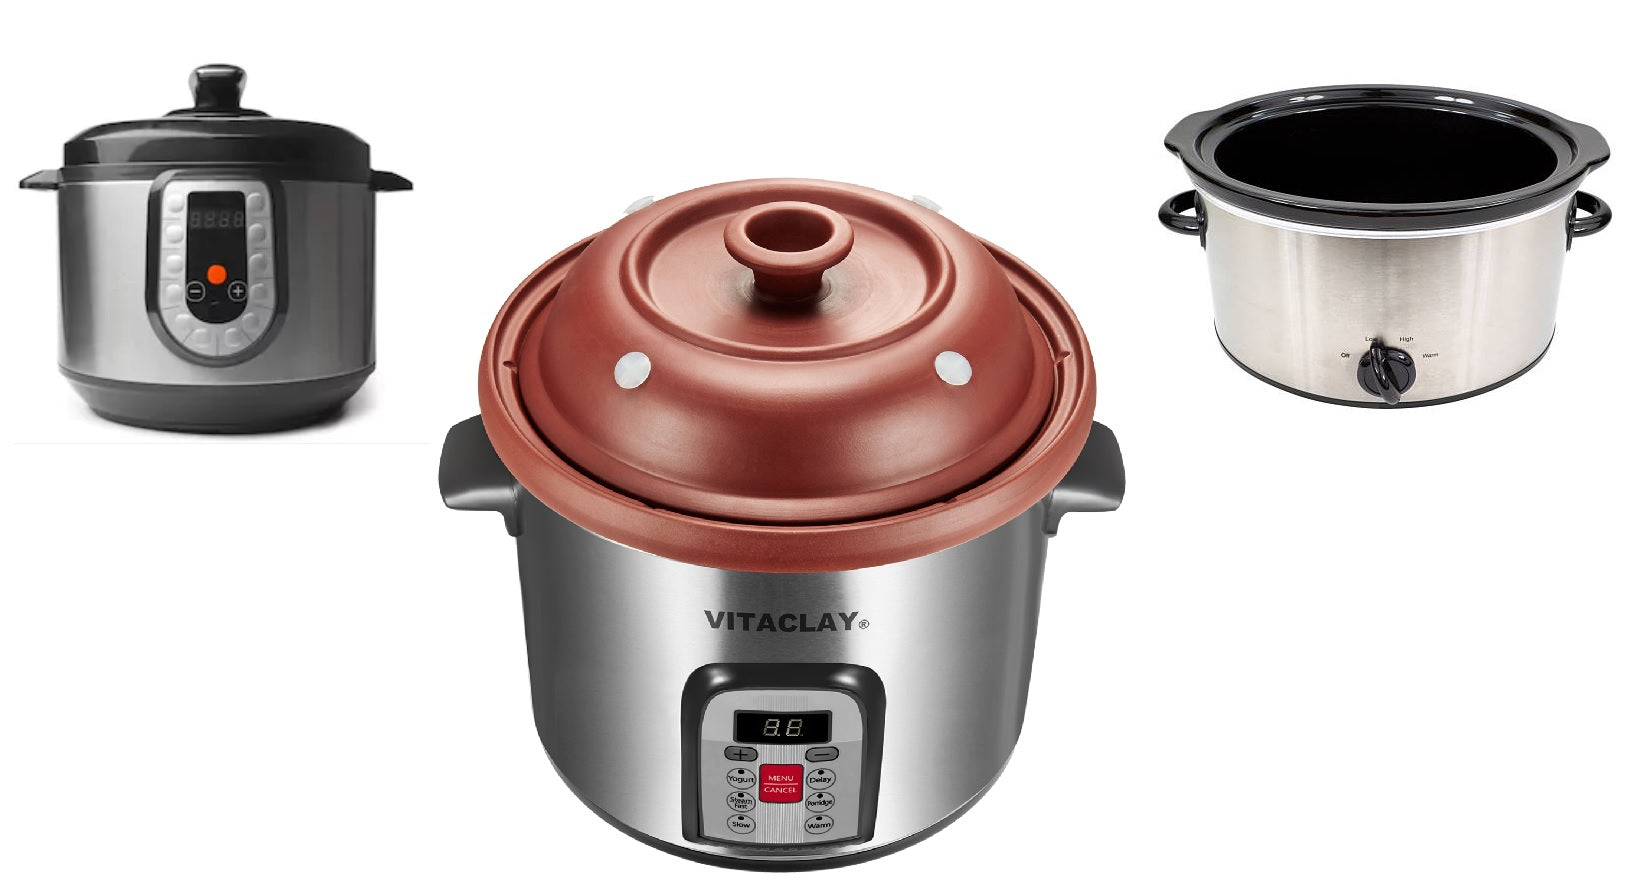 VITACLAY VS. INSTANT POT (PRESSURE COOKER) VS. CROCK POT (SLOW COOKER)? Part II